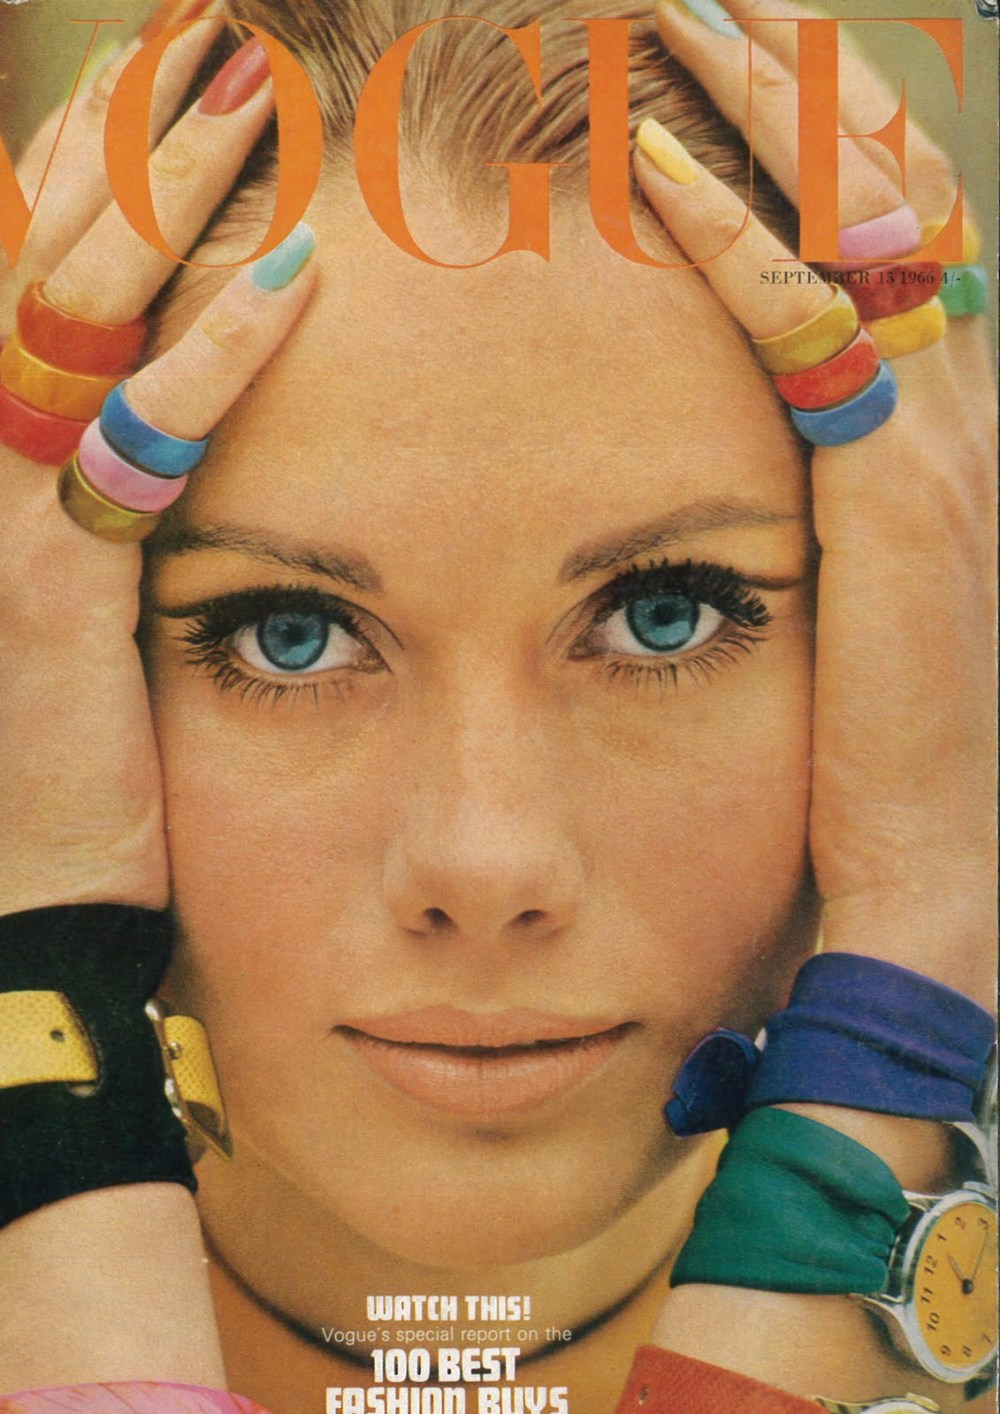 1966 vogue september maud adams cover